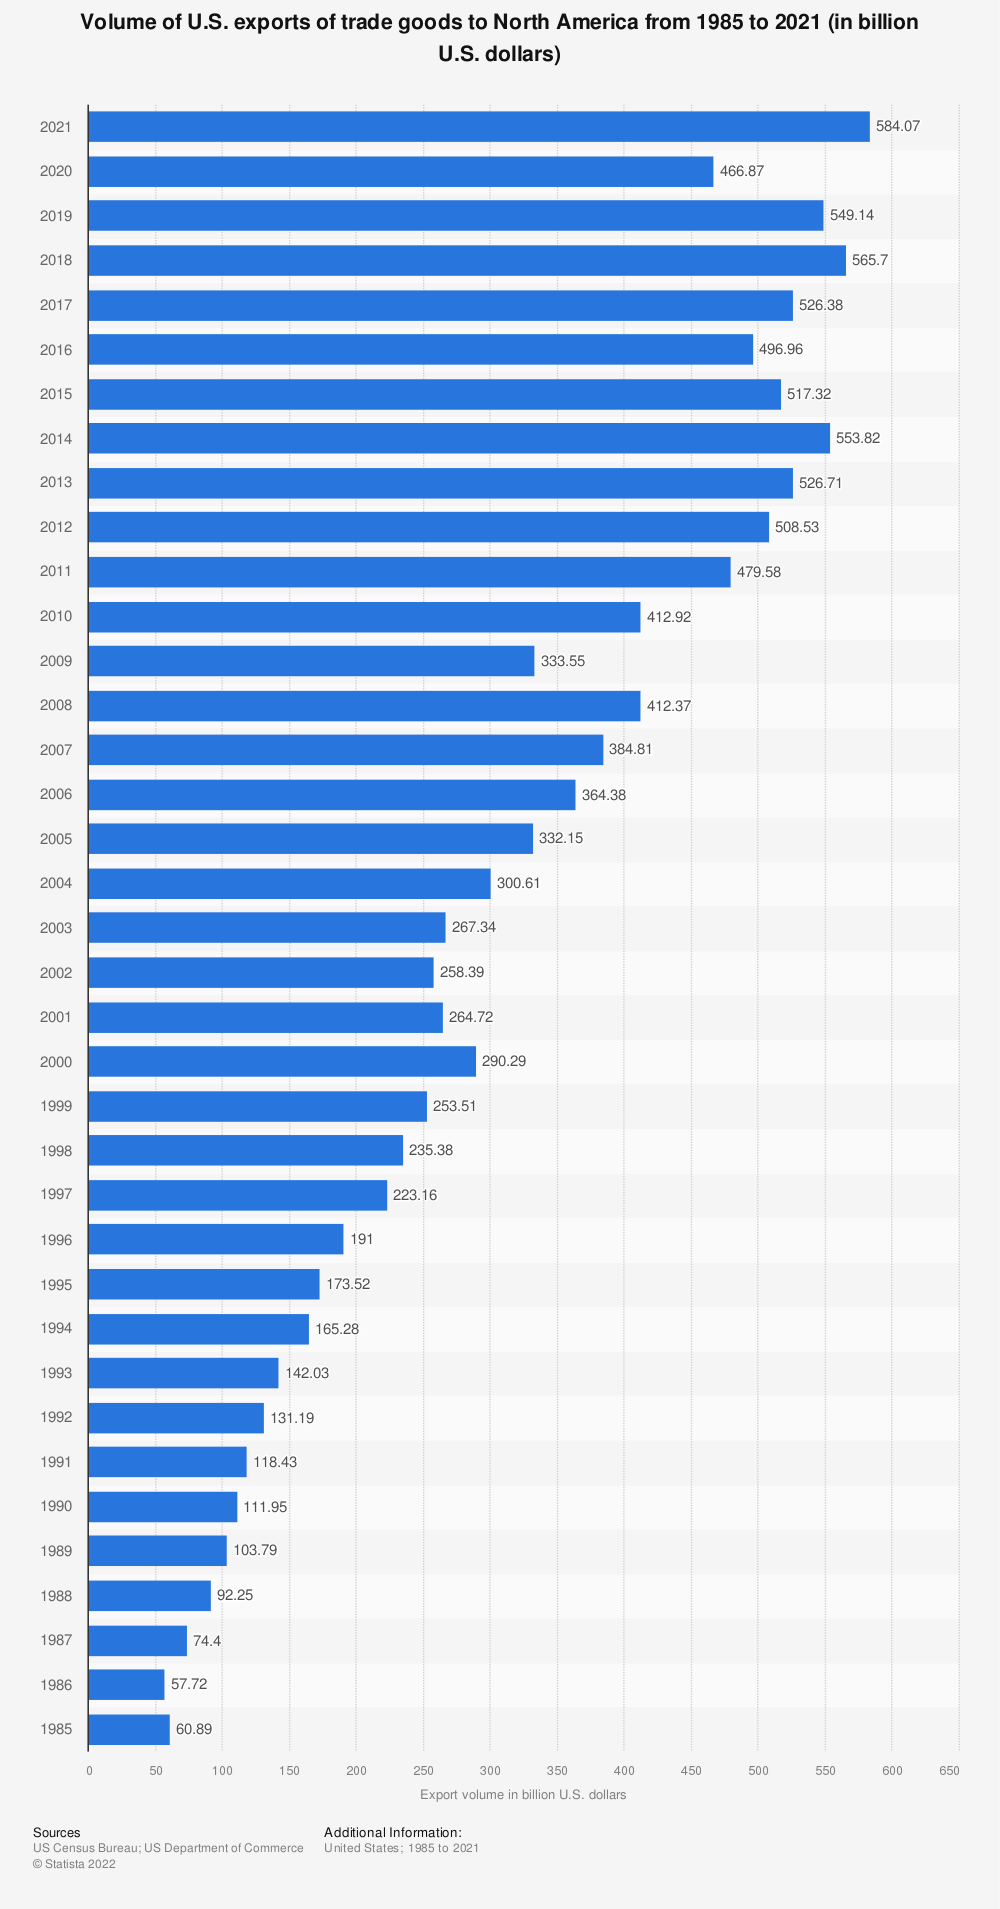 Statistic: Volume of U.S. exports of trade goods to North America from 1985 to 2018 (in billion U.S. dollars) | Statista